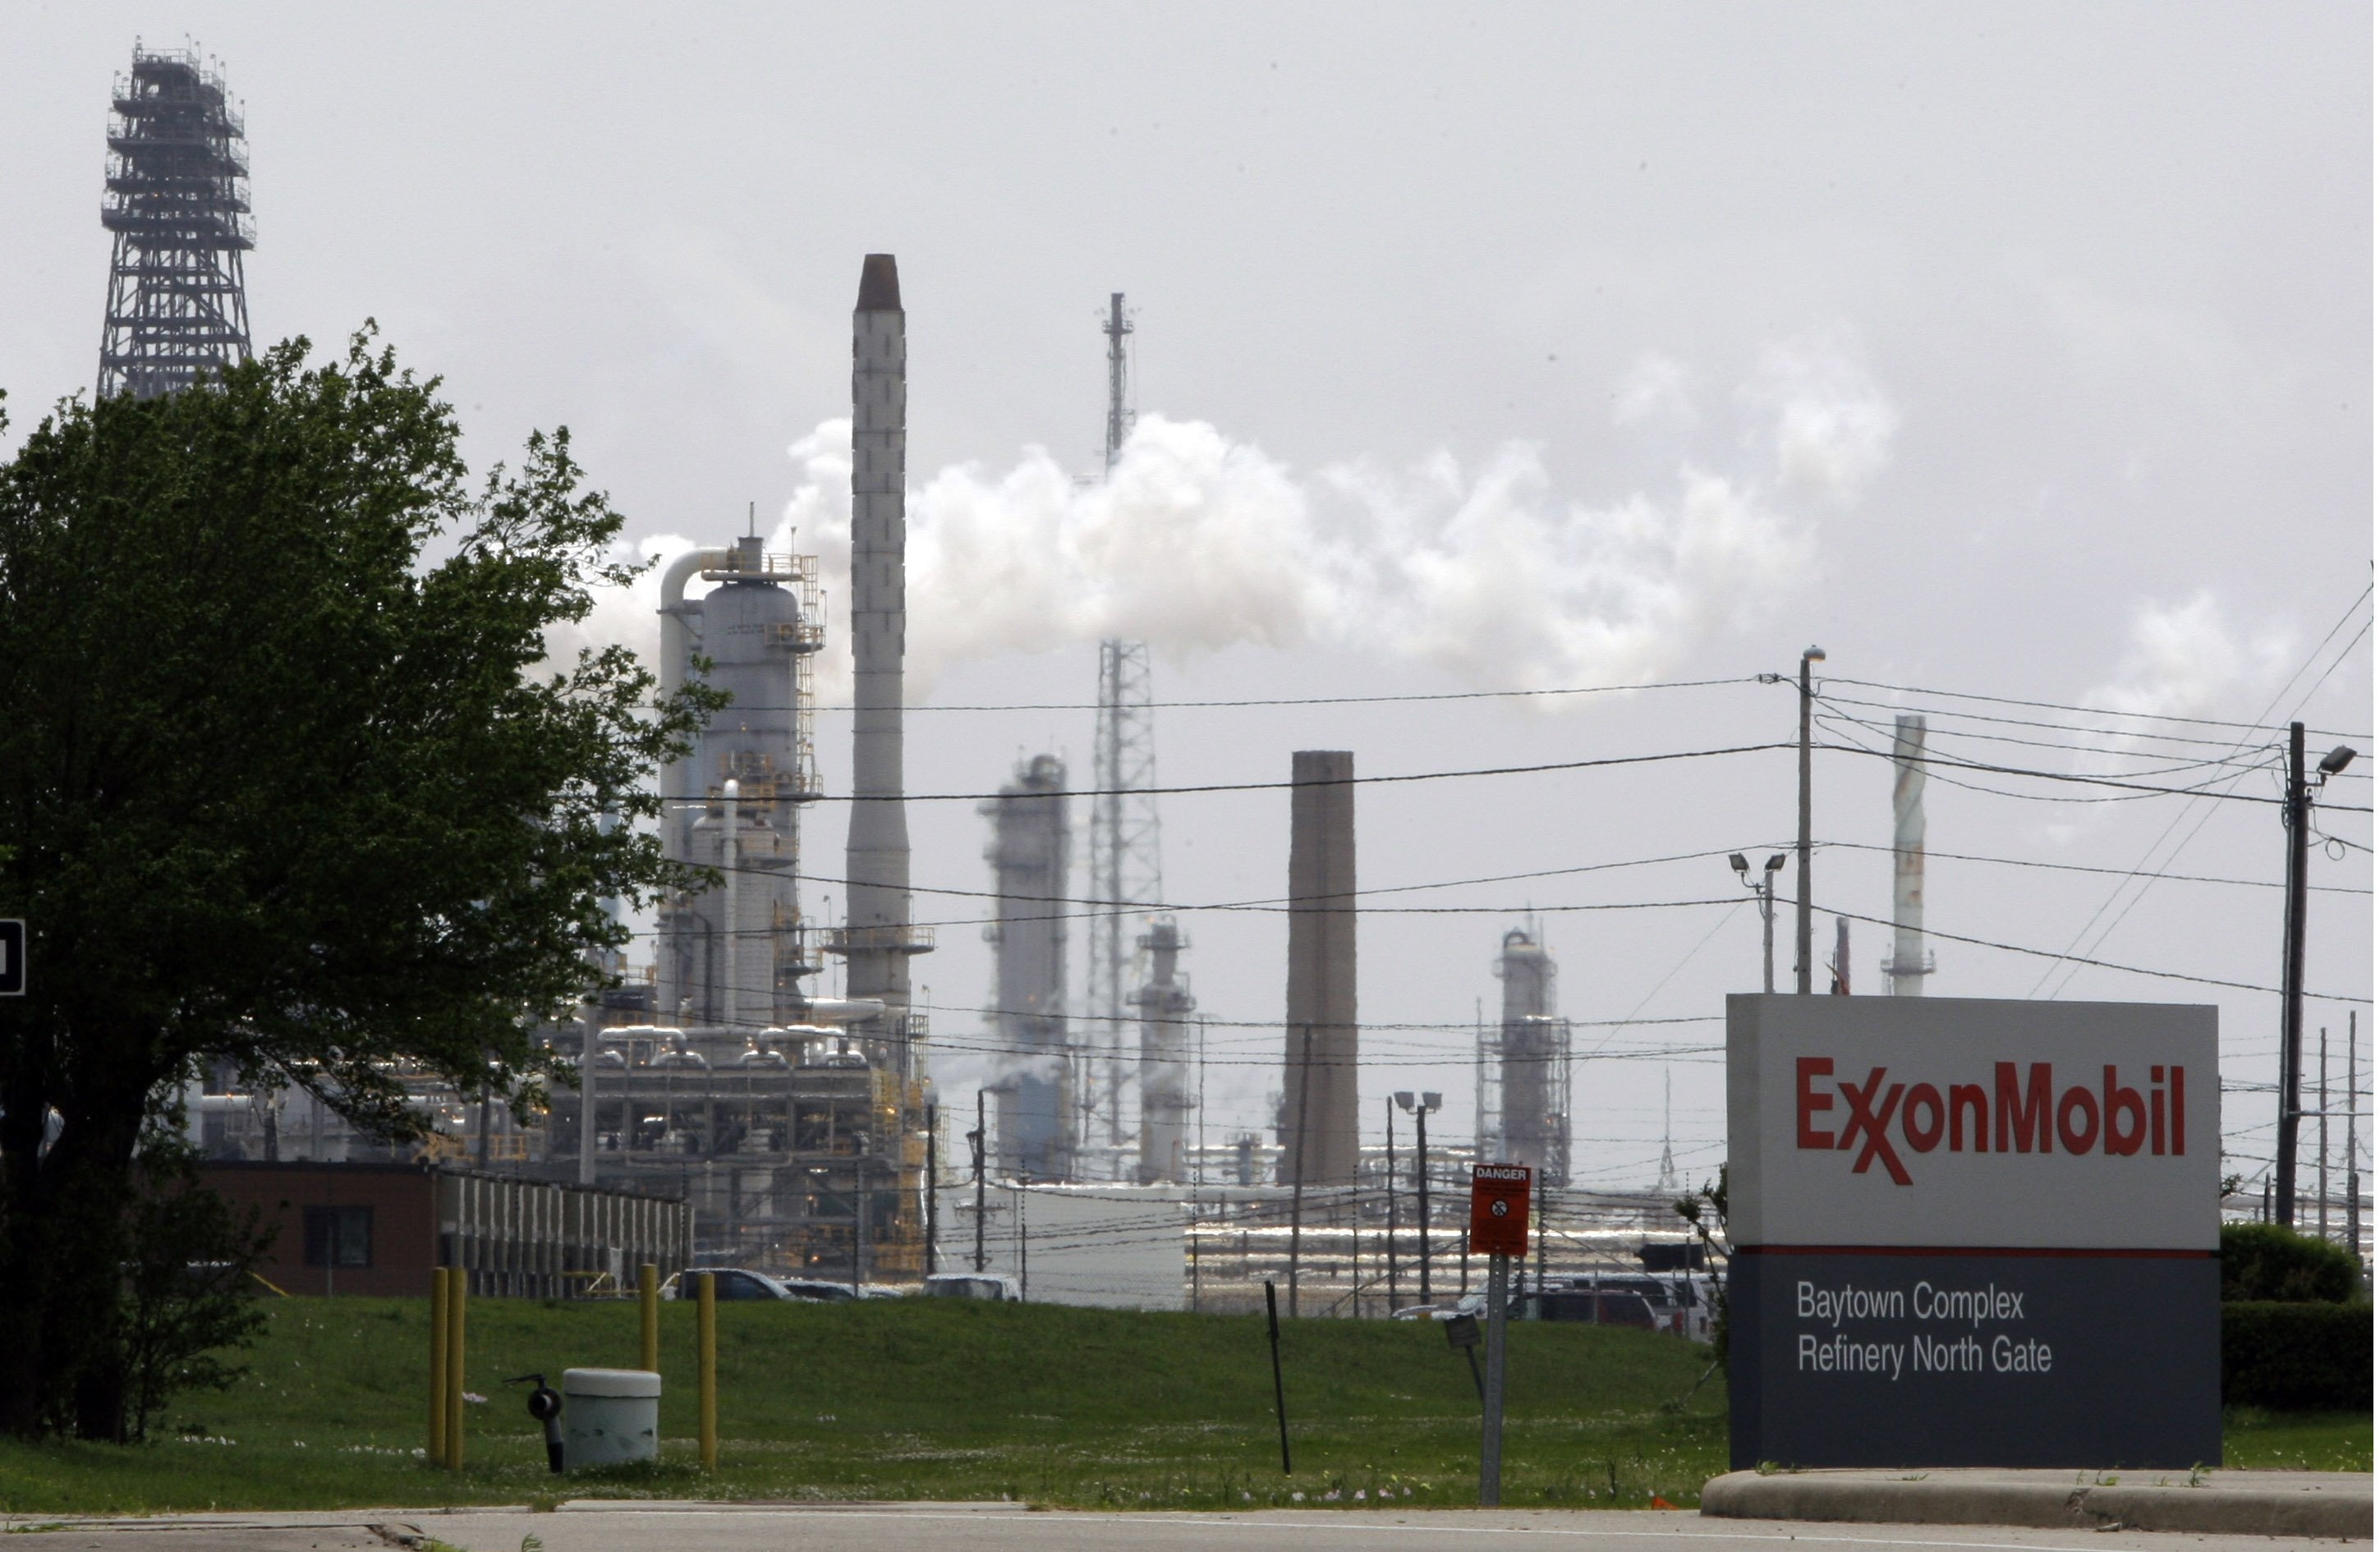 In this April 16, 2010 file photo, steam rises from towers at an Exxon Mobil refinery in Baytown, Texas